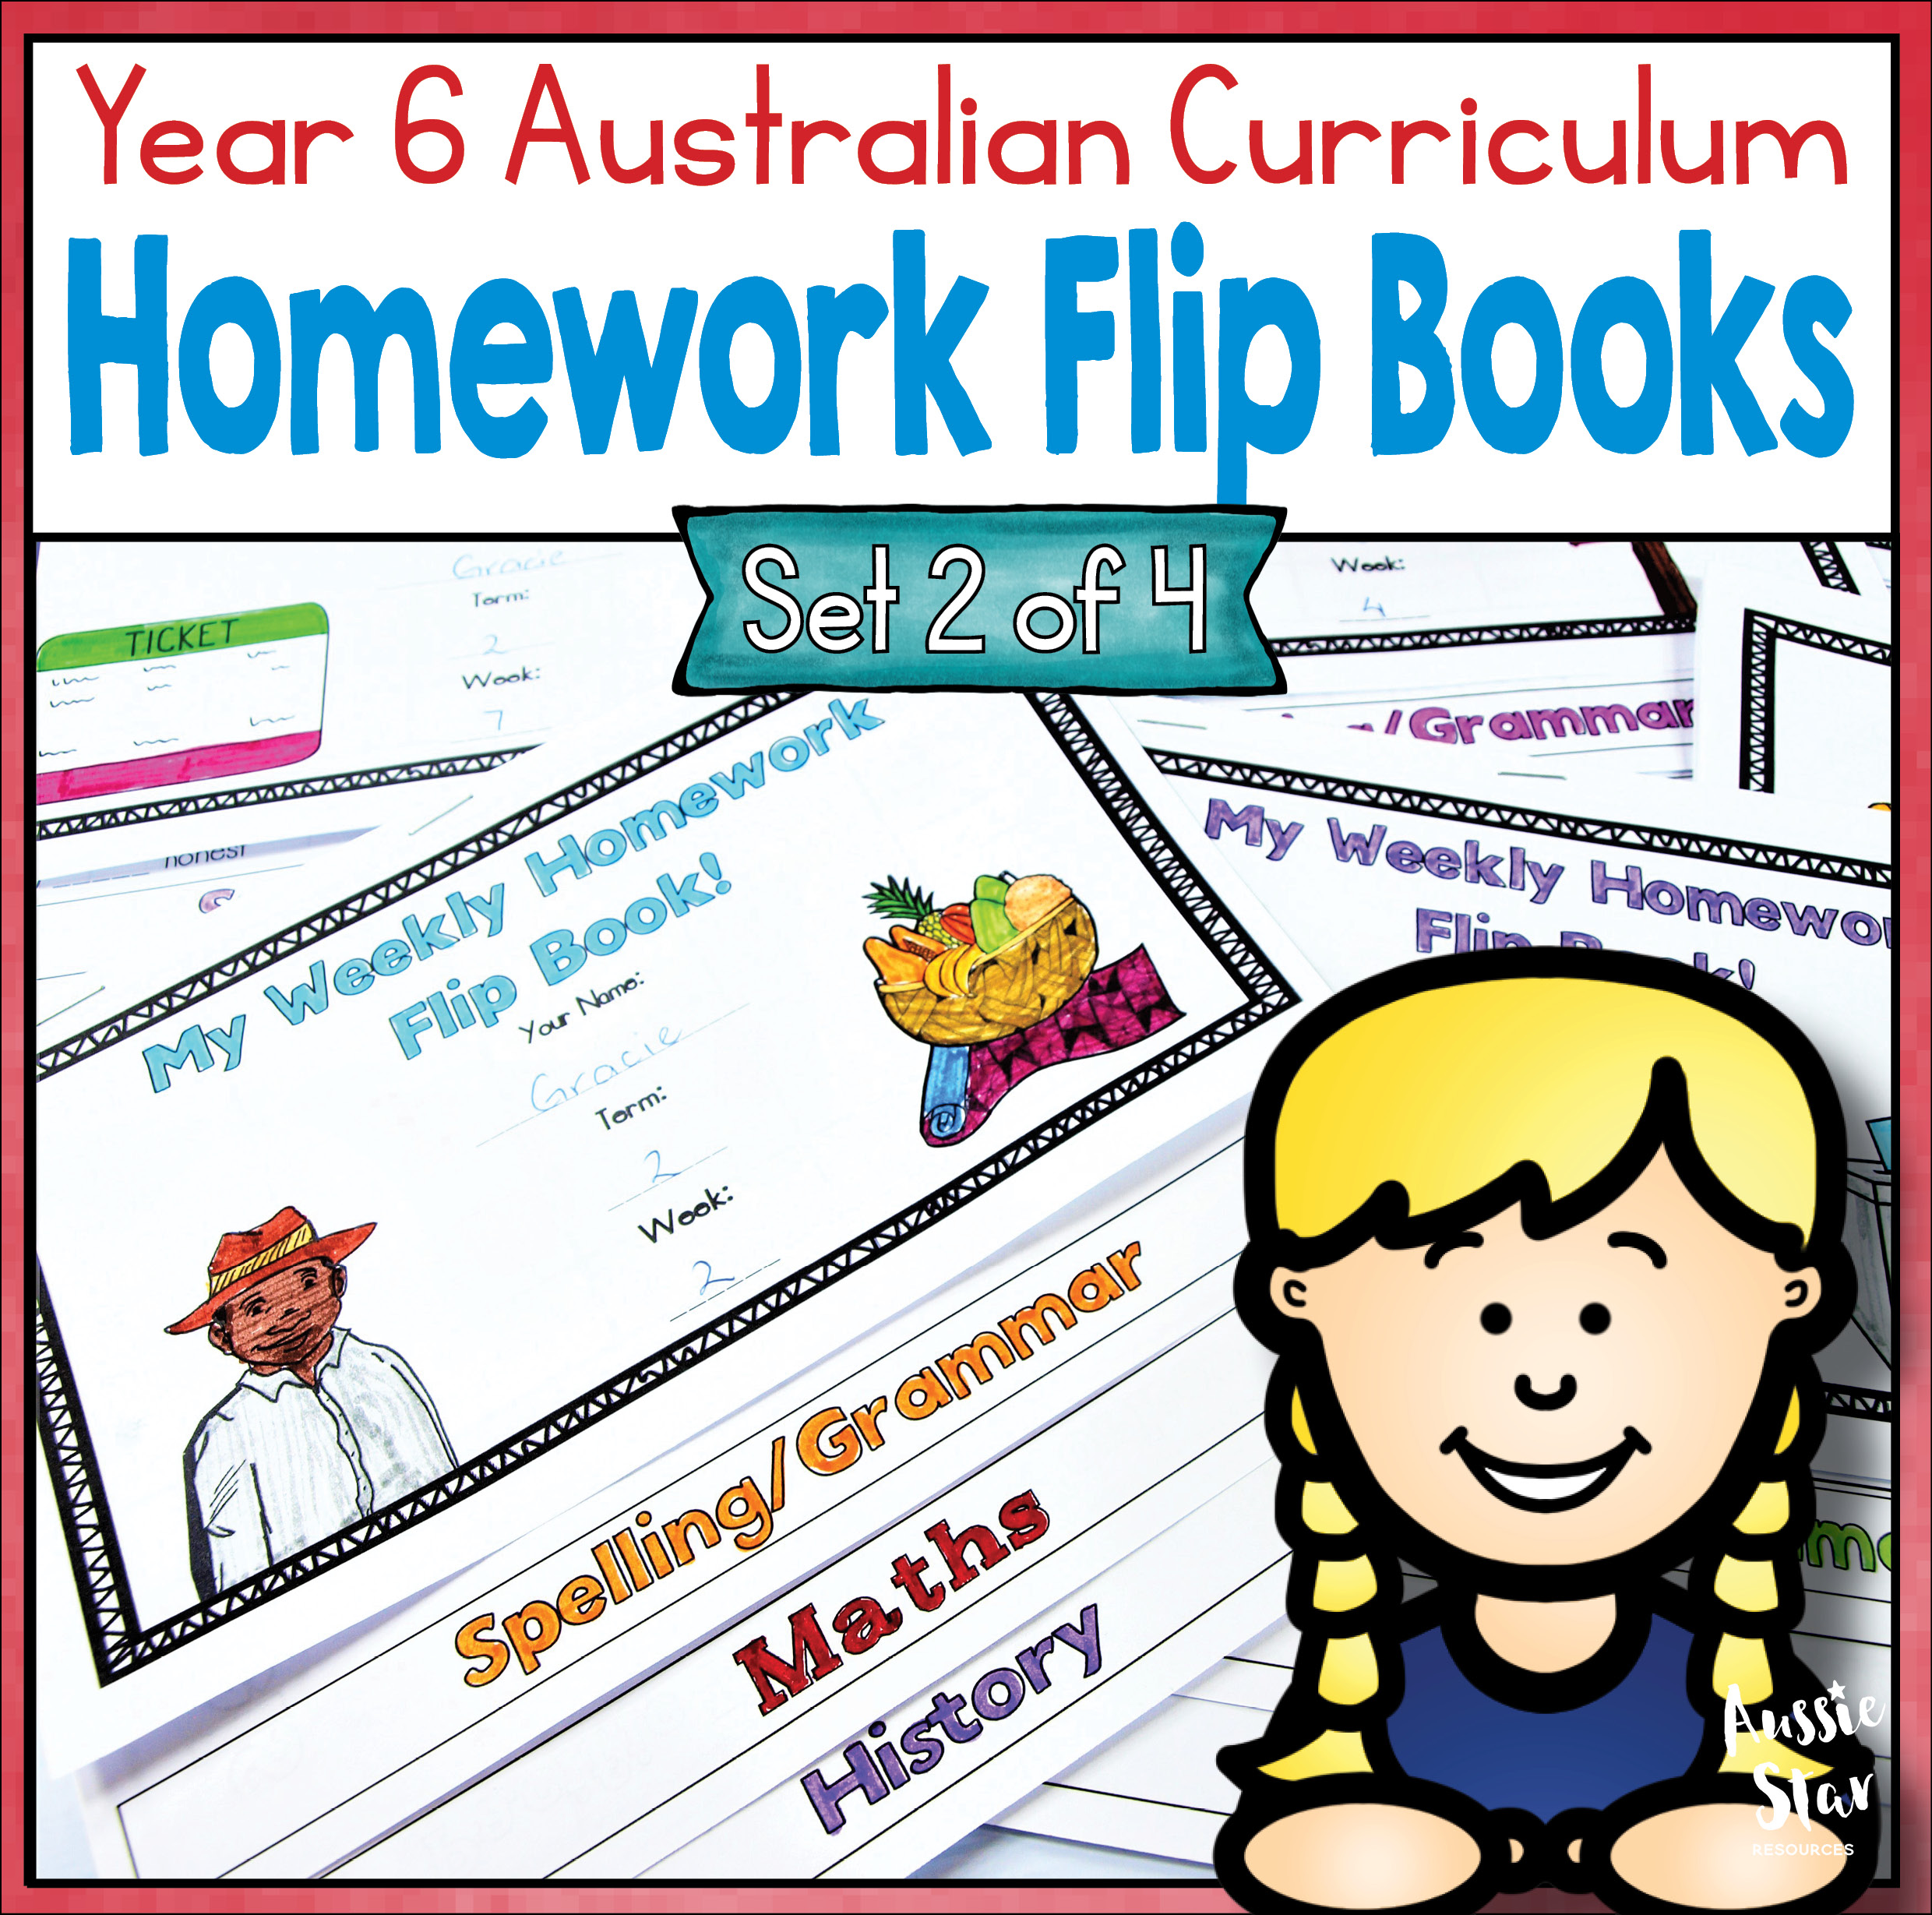 Homework For Year 6 Students